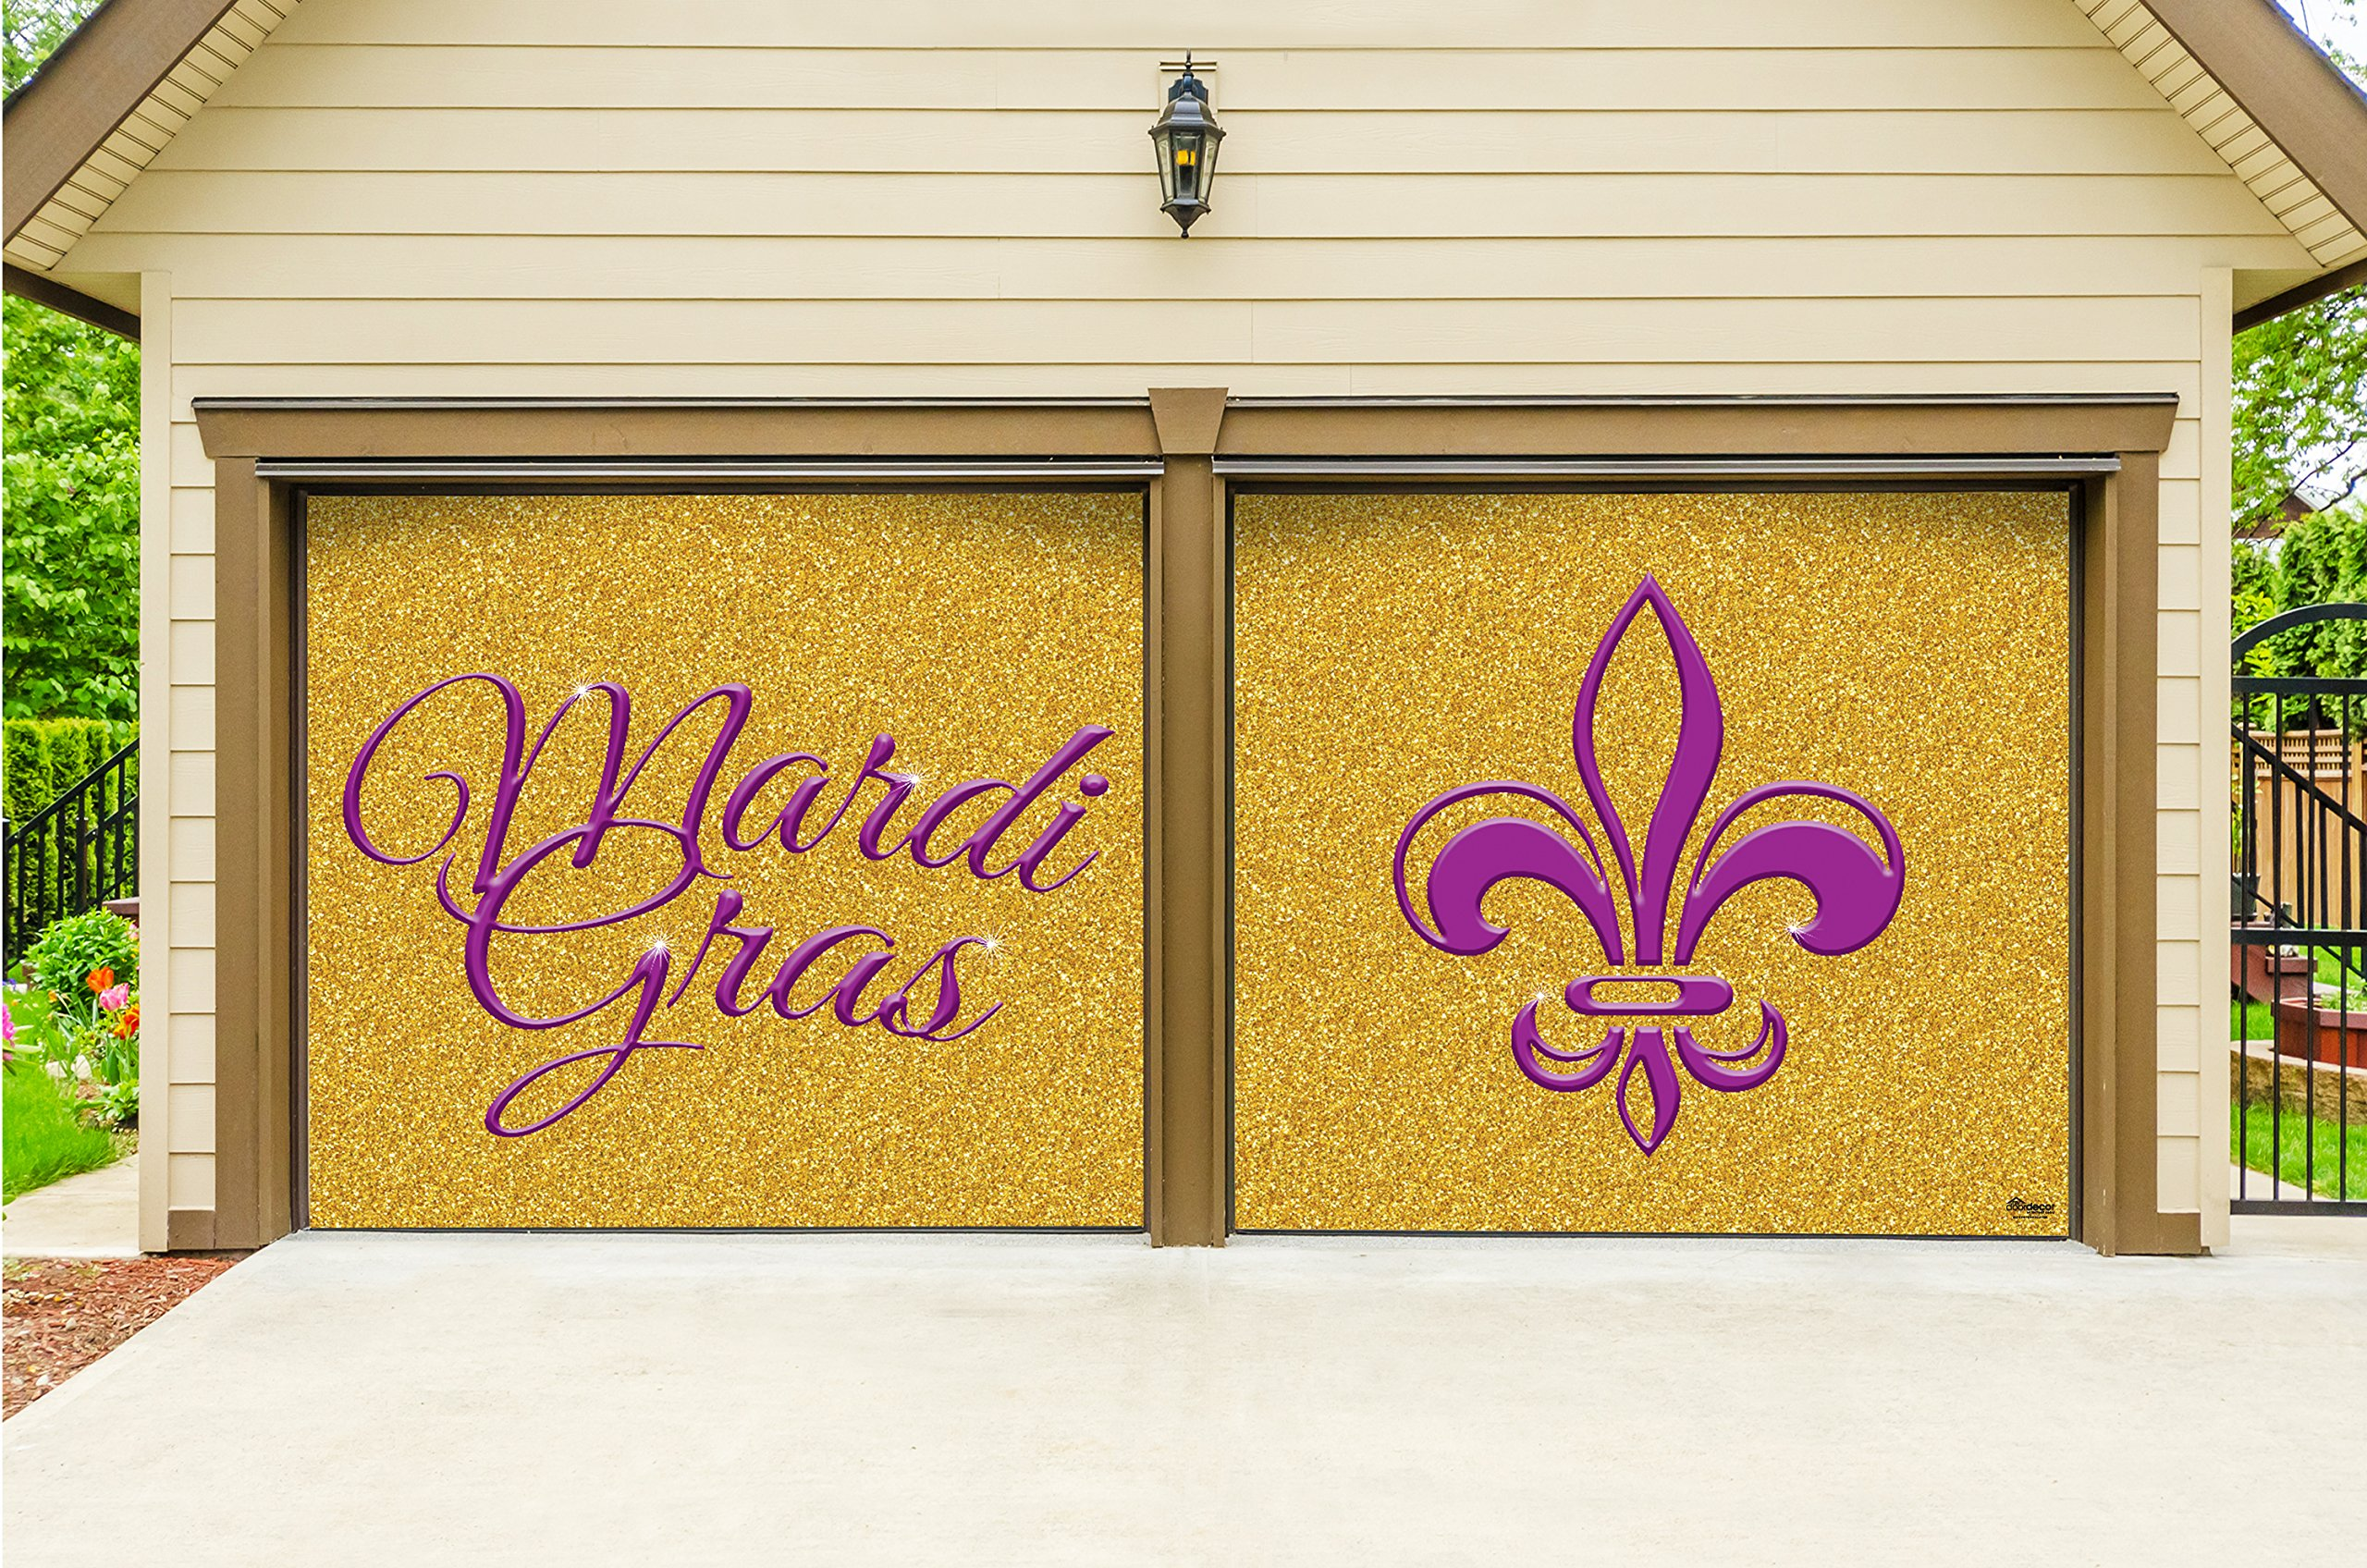 Outdoor Mardi Gras Decorations 2 Car Split Garage Door Banner Cover Mural - Mardi Gras Gold Glitter, Two 7'x 8' Graphic Kits - ''The Original Mardi Gras Supplies Garage Door Banner Decor''